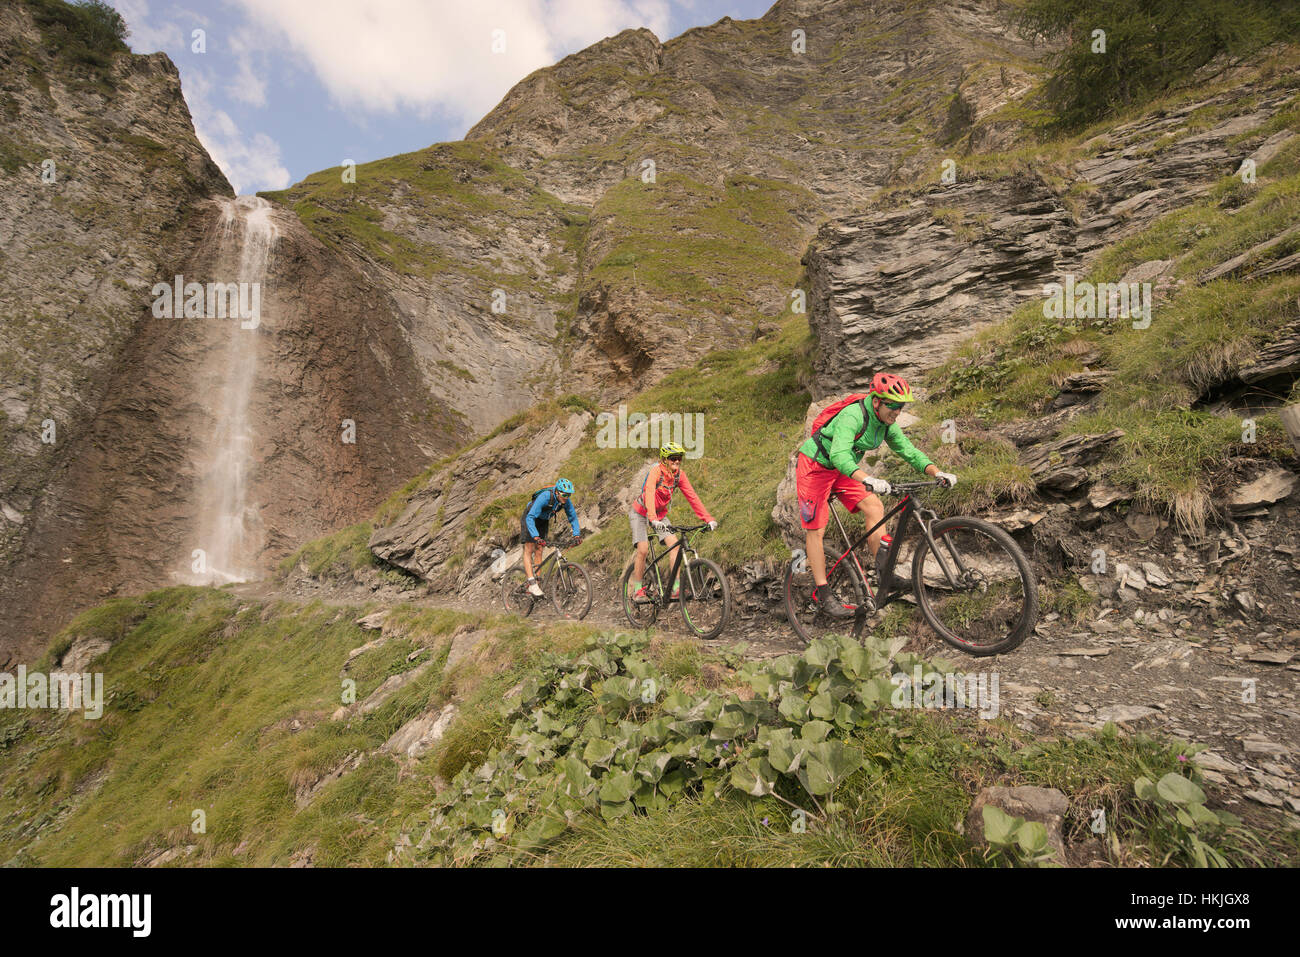 Three mountain bikers riding on hill at waterfall, Zillertal, Tyrol, Austria - Stock Image